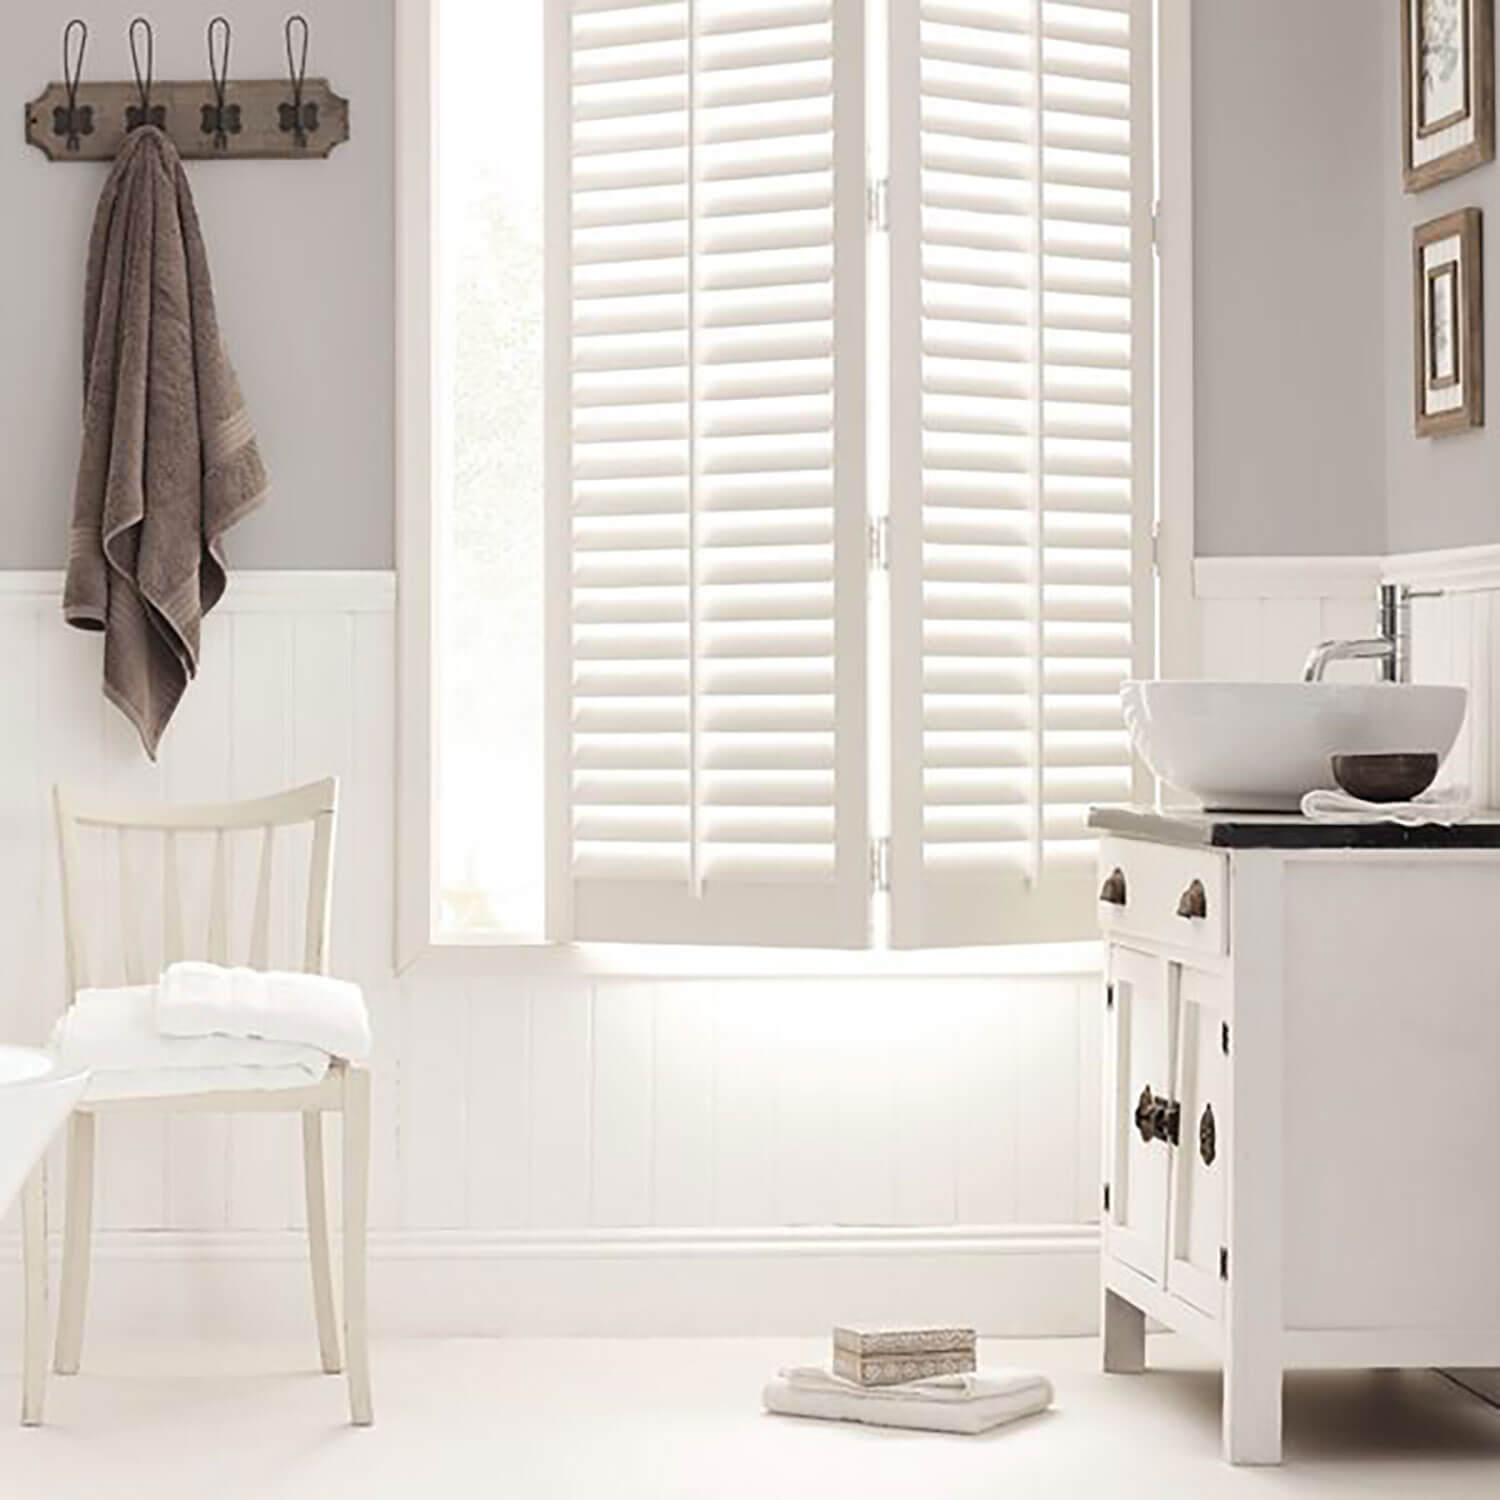 Plantation Shutters | PVC Roller Blinds